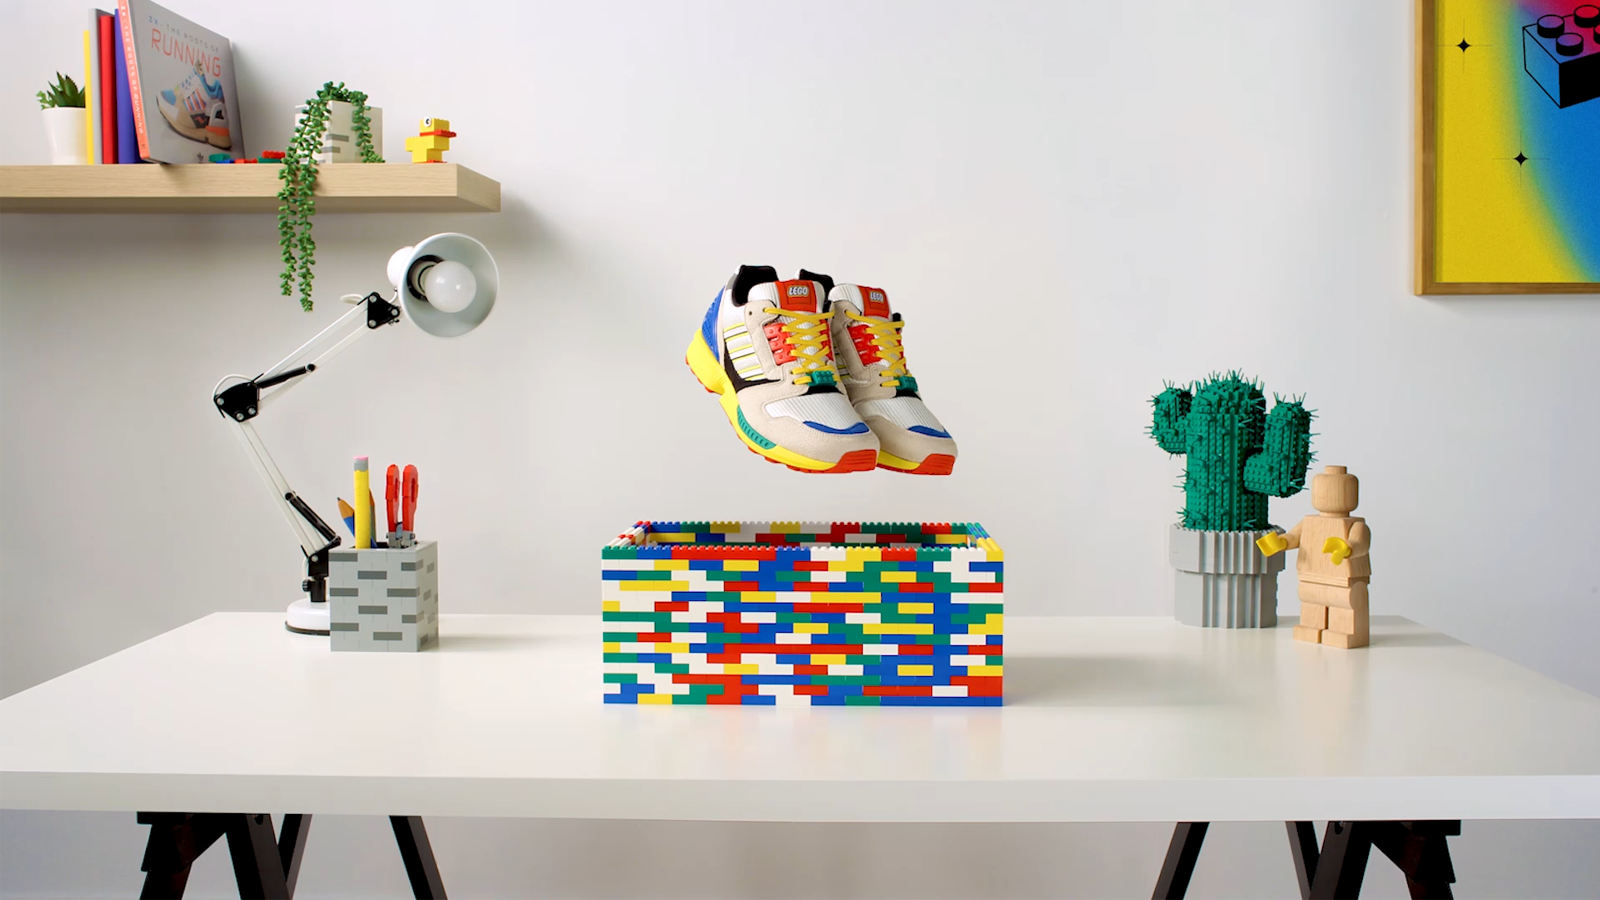 LEGO Adidas ZX 8000 sneaker collaboration in a lego box on a desk